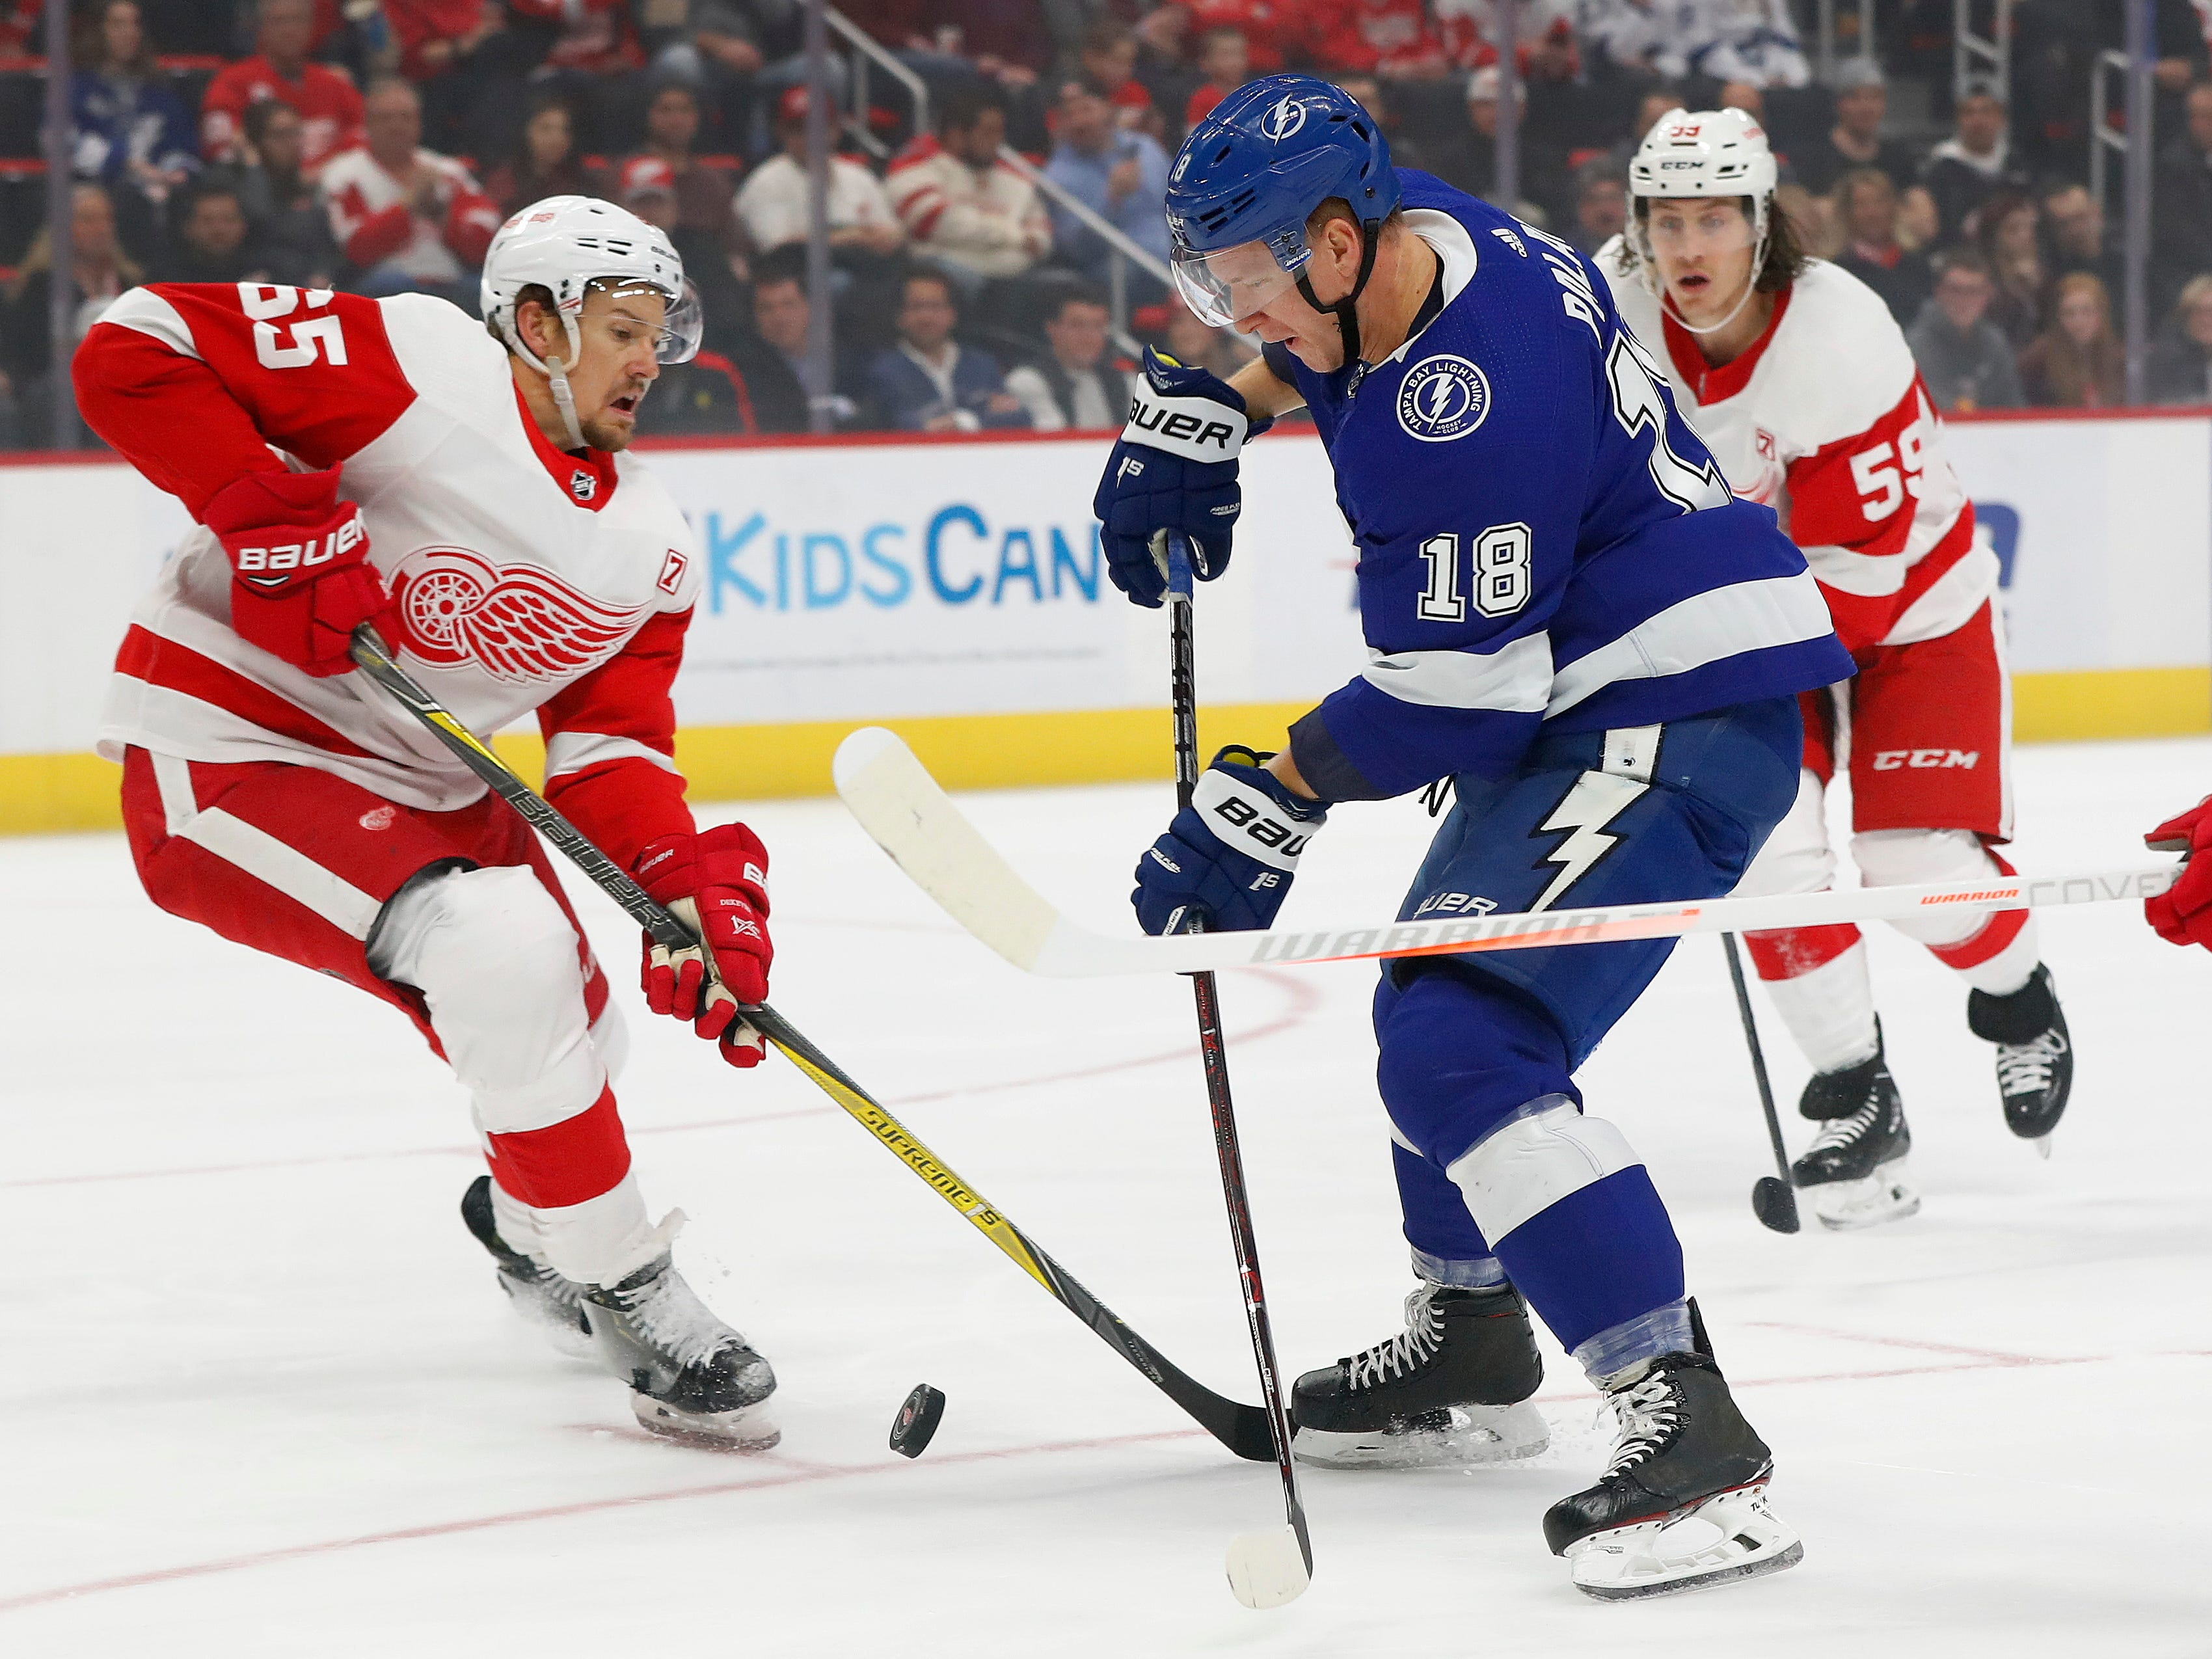 Tampa Bay Lightning left wing Ondrej Palat (18) shoots on Detroit Red Wings defenseman Danny DeKeyser (65) in the first period onThursday, March 14, 2019, in Detroit, Michigan.